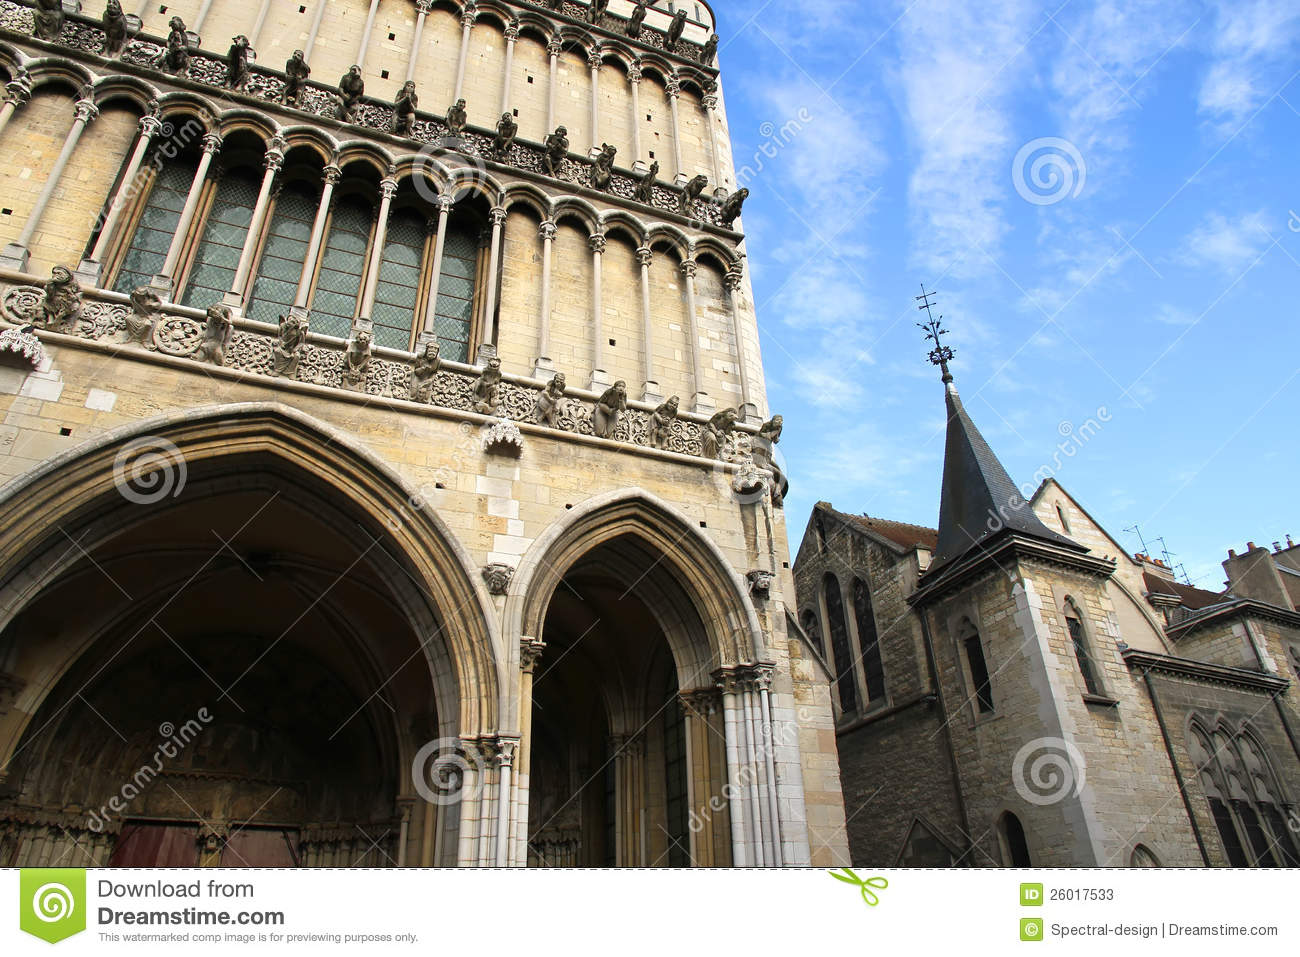 Ancient architecture in dijon stock photos image 26017533 for Dijon architecture